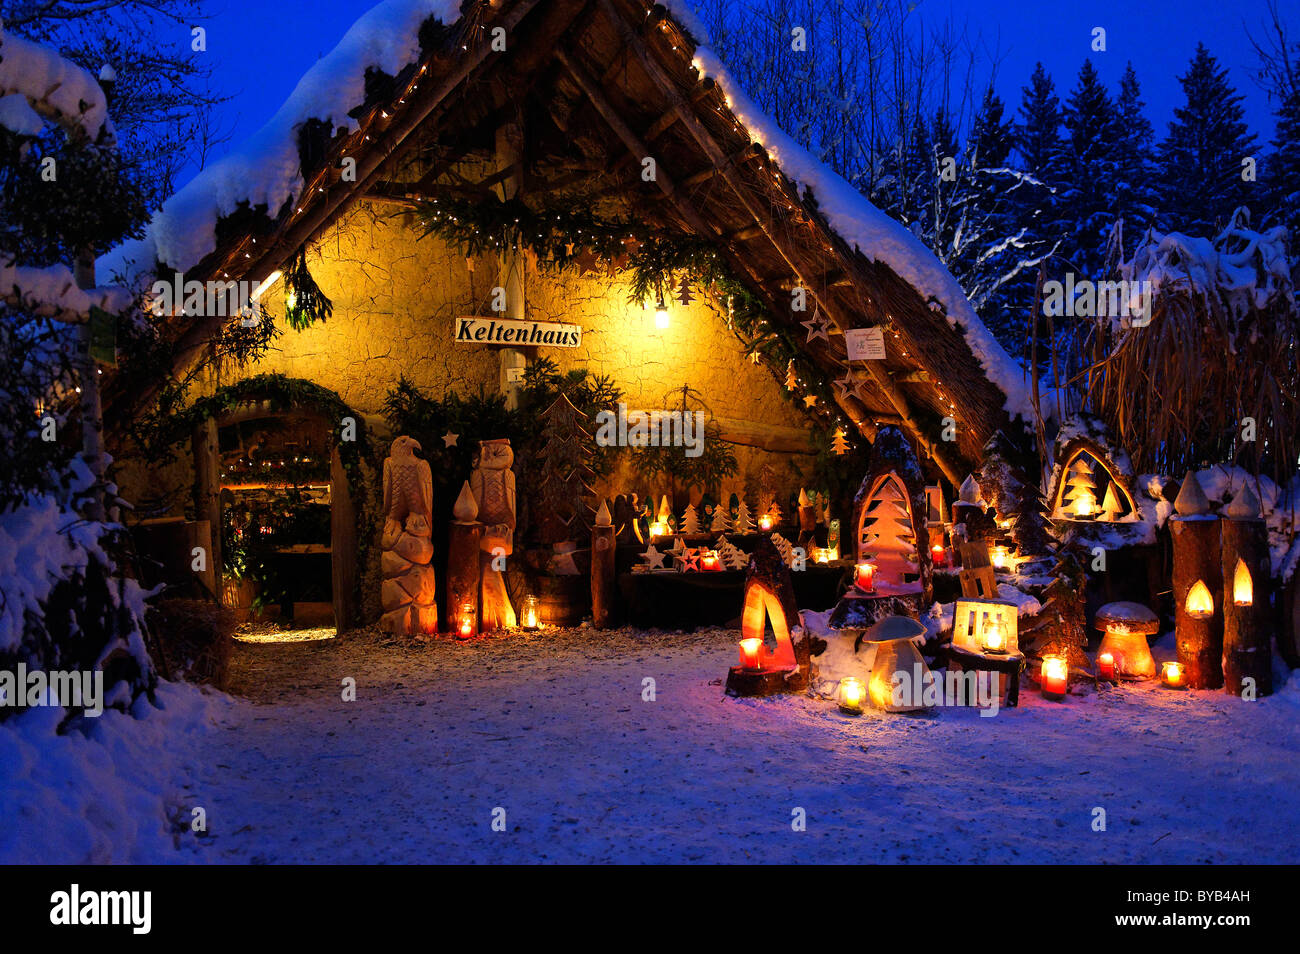 Christmas market at the Waldbuehne, forest stage, Halsbach, Upper Bavaria, Germany, Europe - Stock Image